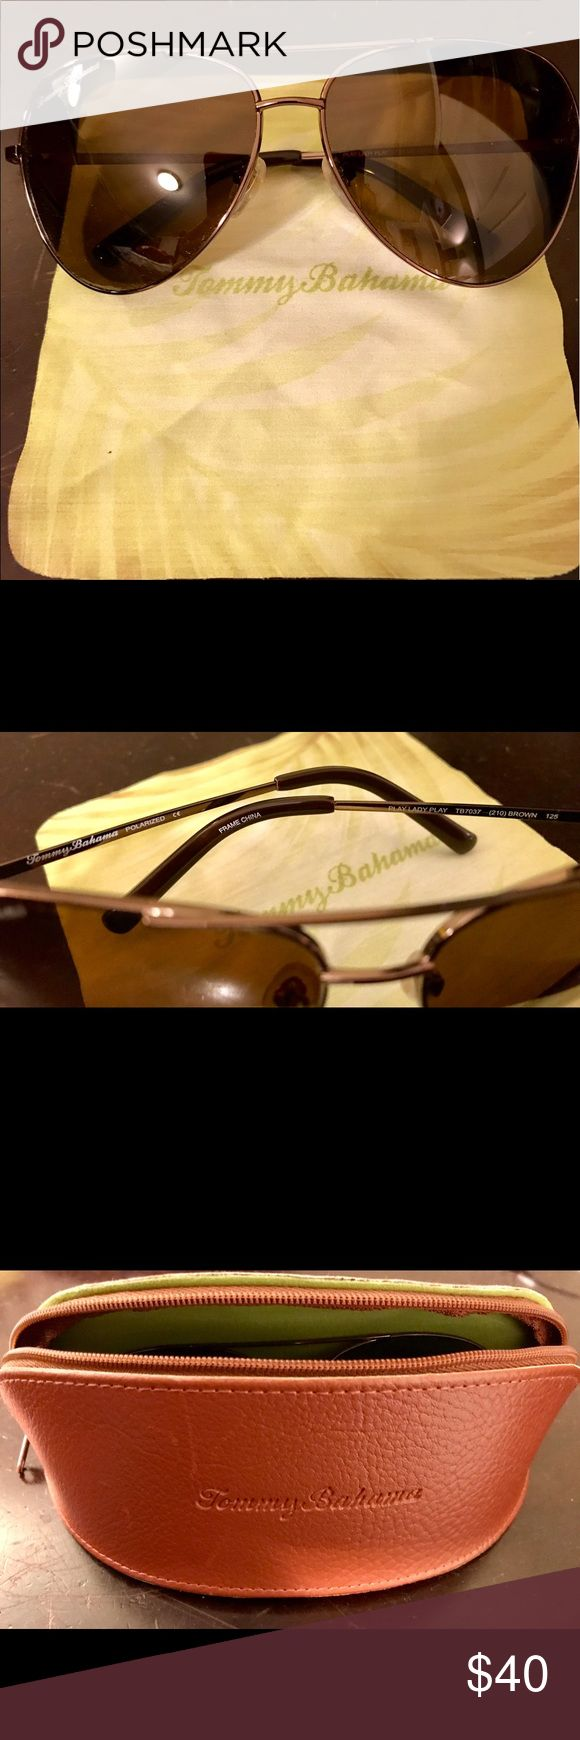 Tommy Bahama Polarized Women Aviator Sunglasses Tommy Bahama Polarized Play Lady Play sunglass. Color: Brown. Brand New. Received as a gift and never used. Comes with case and lenses cloth. Tommy Bahama Accessories Sunglasses